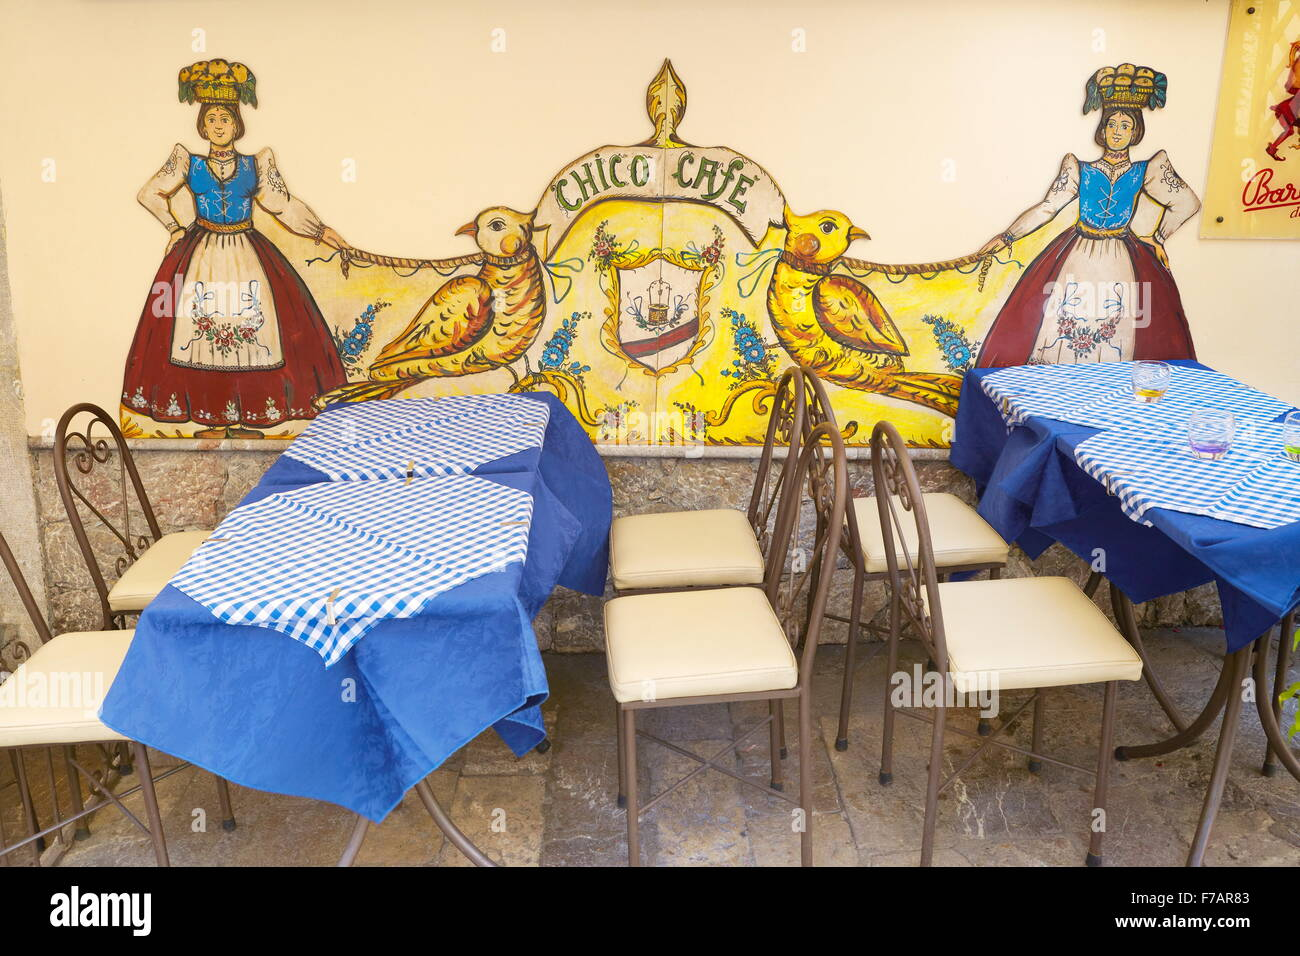 Cafe decoration, Old Town in Taormina, Sicily, Italy - Stock Image